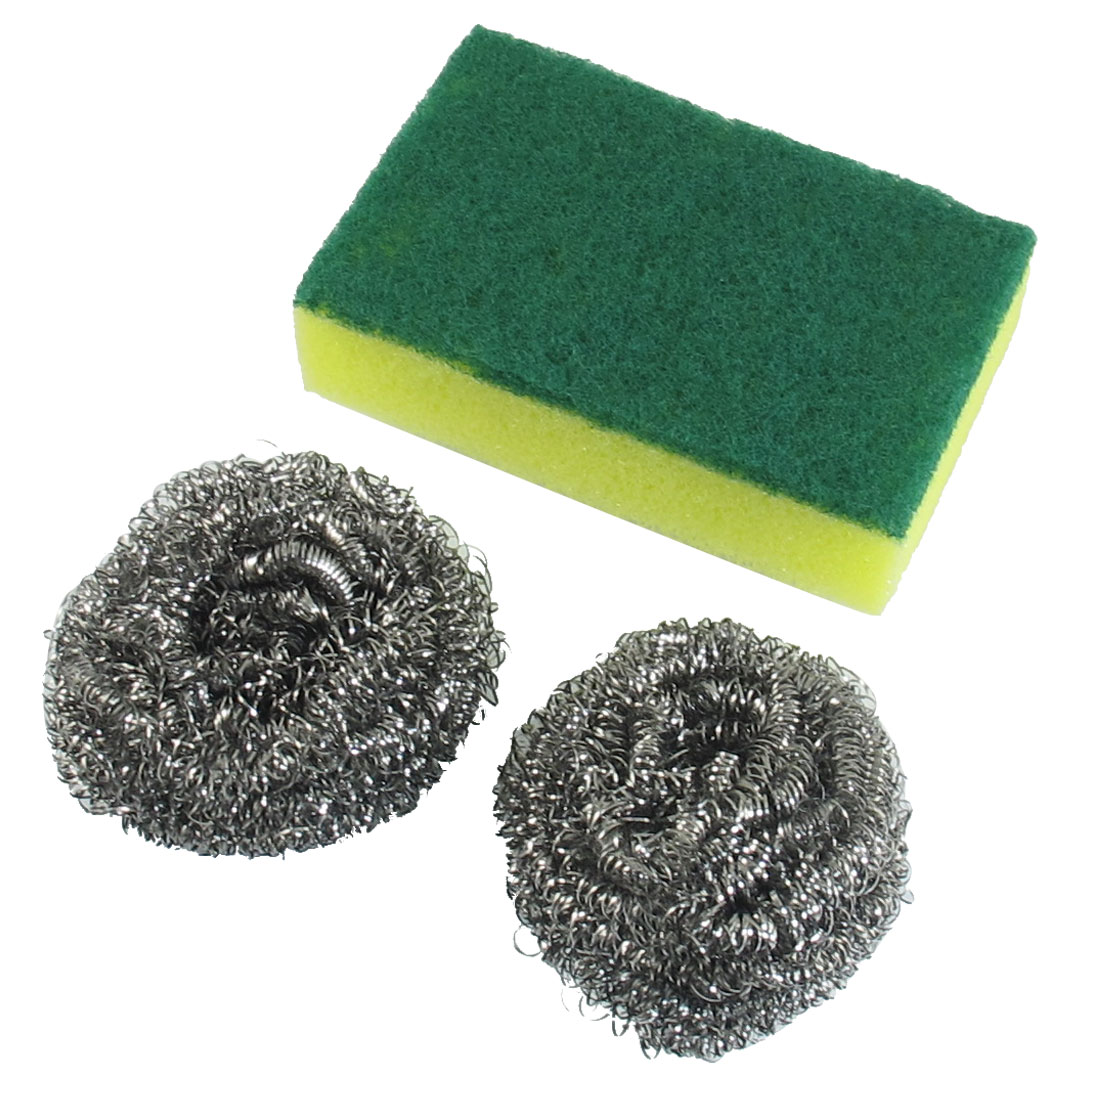 Cleaning sponges and steelwool pads